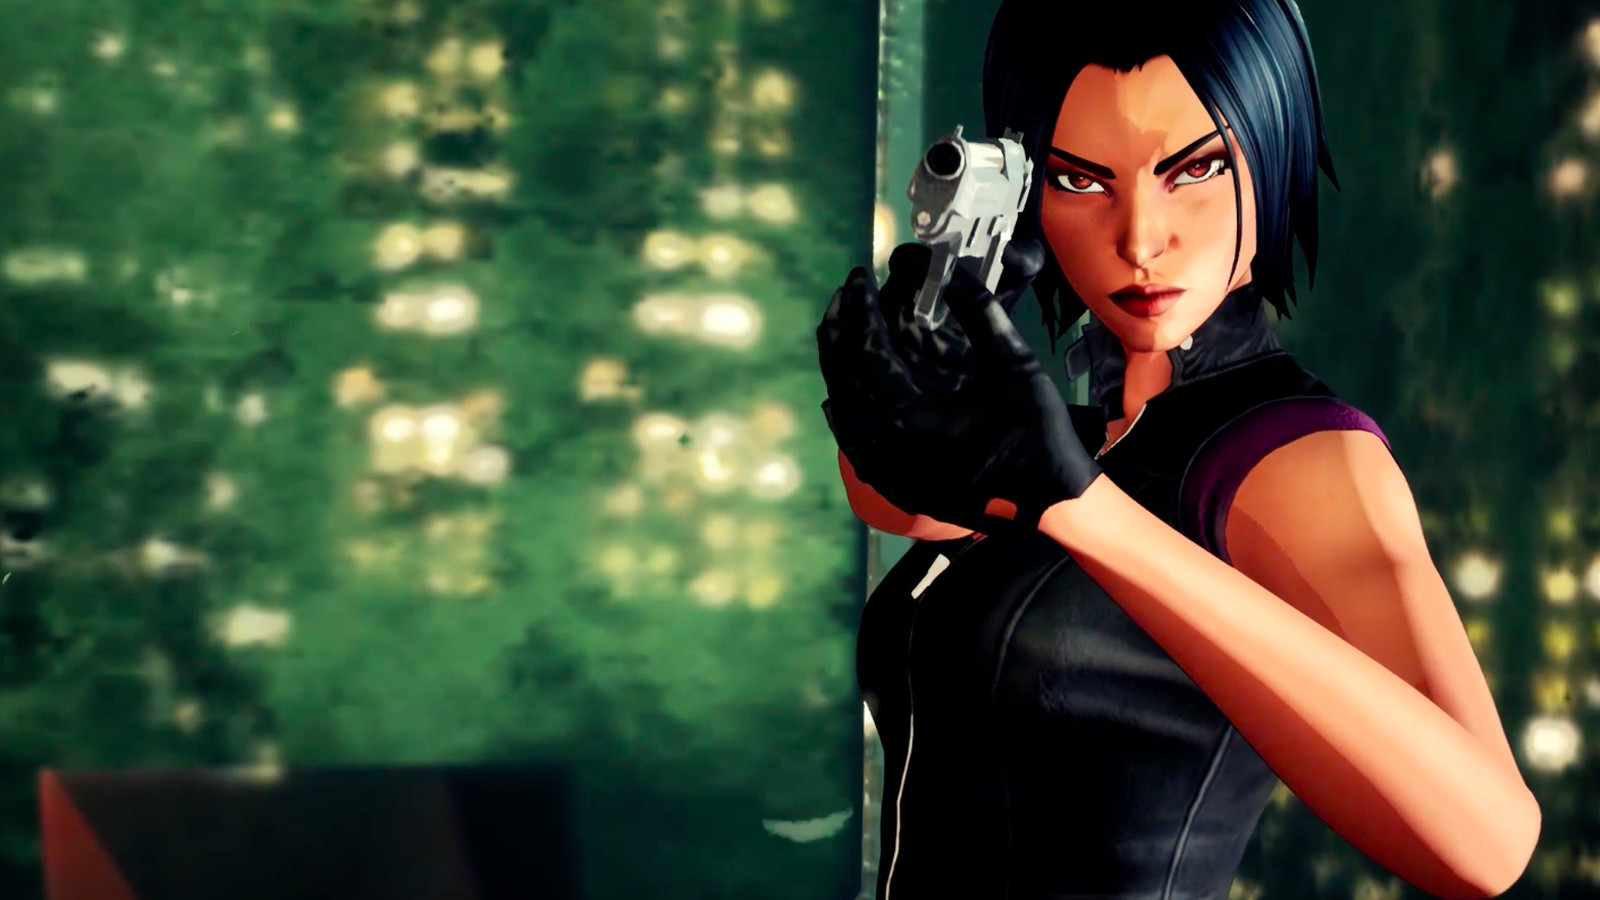 A Fear Effect remake is in the works for PC, consoles